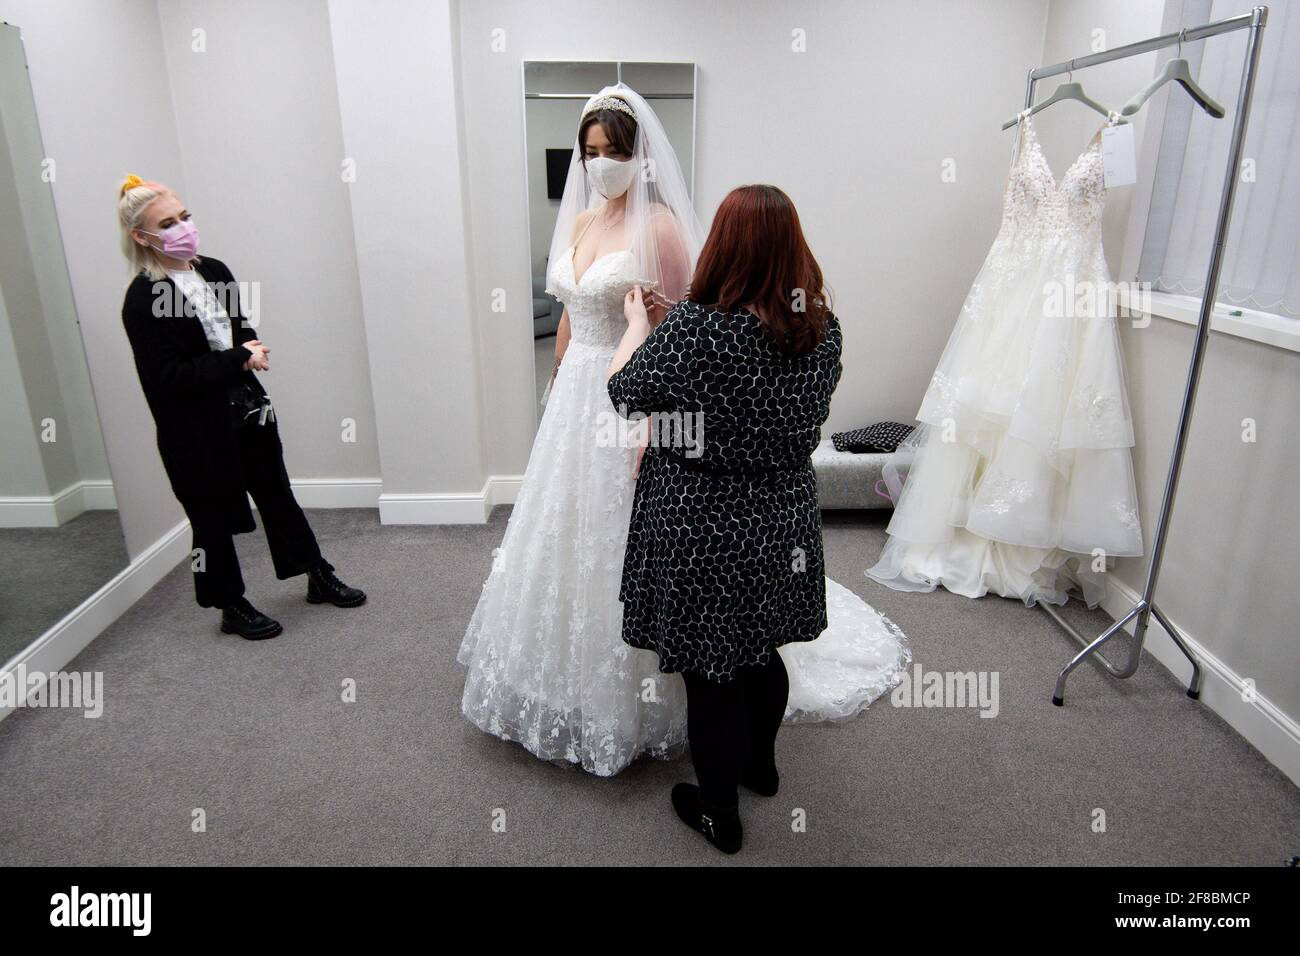 Bride-to-be Erin Barwell tries on dresses for the first time since non-essential retailers reopened this week. Erin, from Stoke-on-Trent, is due to get married next February and tried on dresses at Roberta's Bridal in Burslem, Stoke-on-Trent, following the further easing of lockdown restrictions in England. Picture date: Tuesday April 13, 2021. Stock Photo